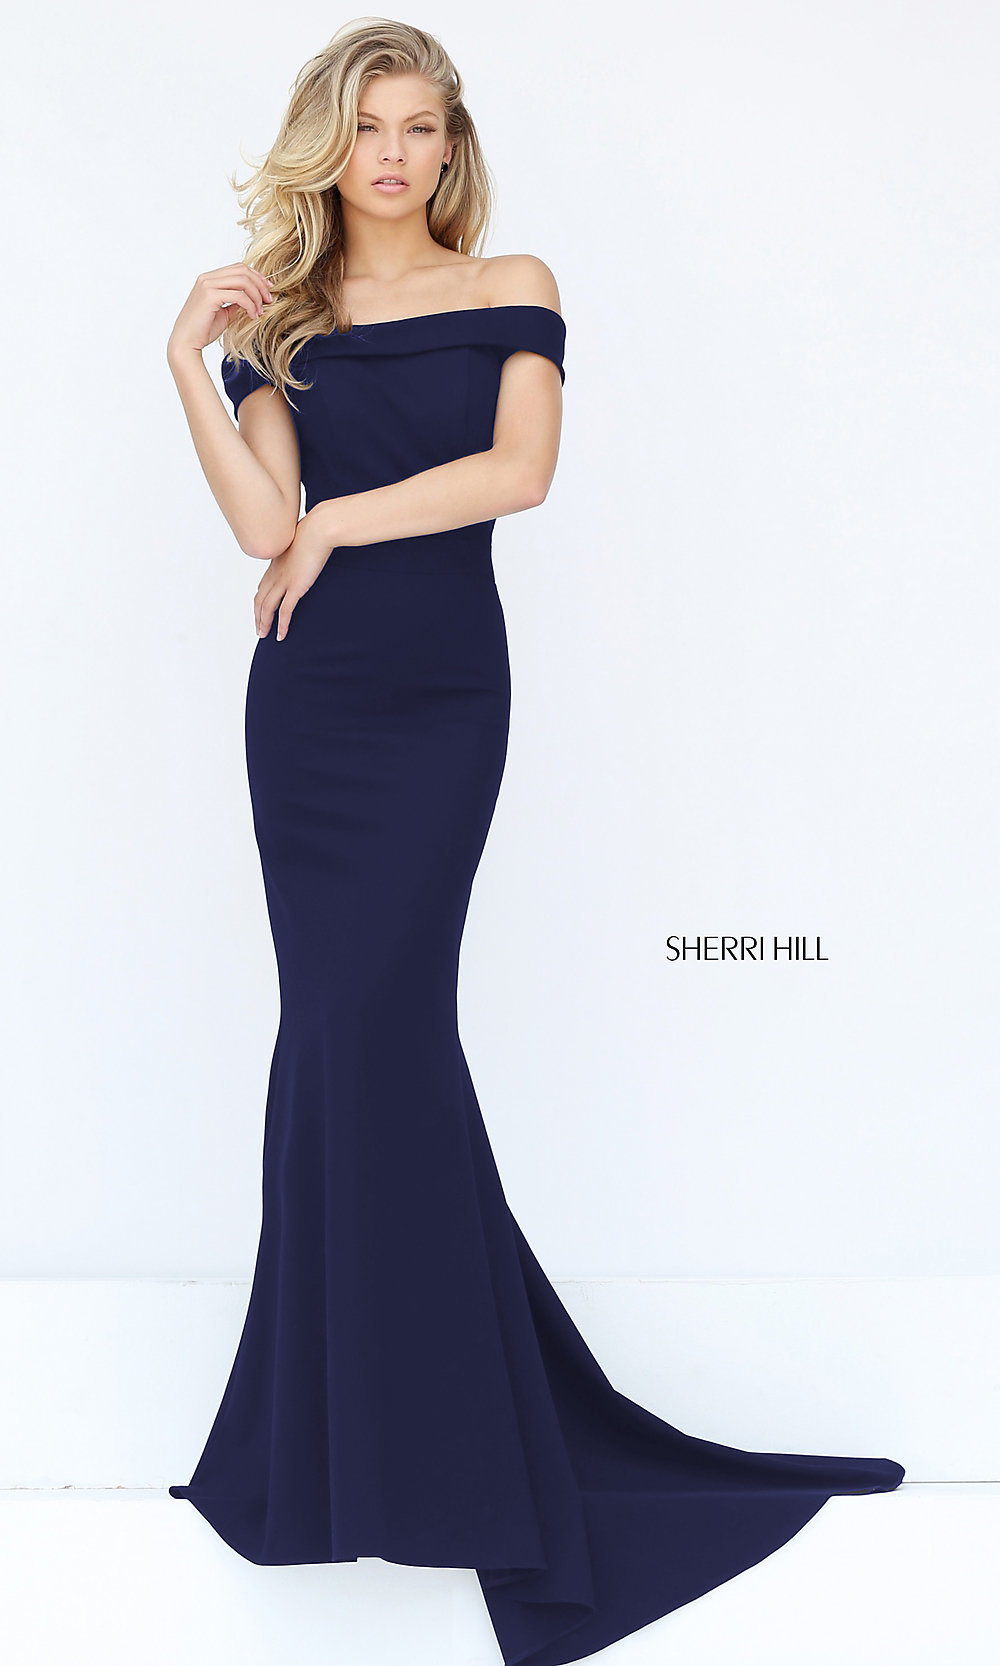 1dba78c228 Sherri Hill Prom Dresses and Pageant Gowns - PromGirl